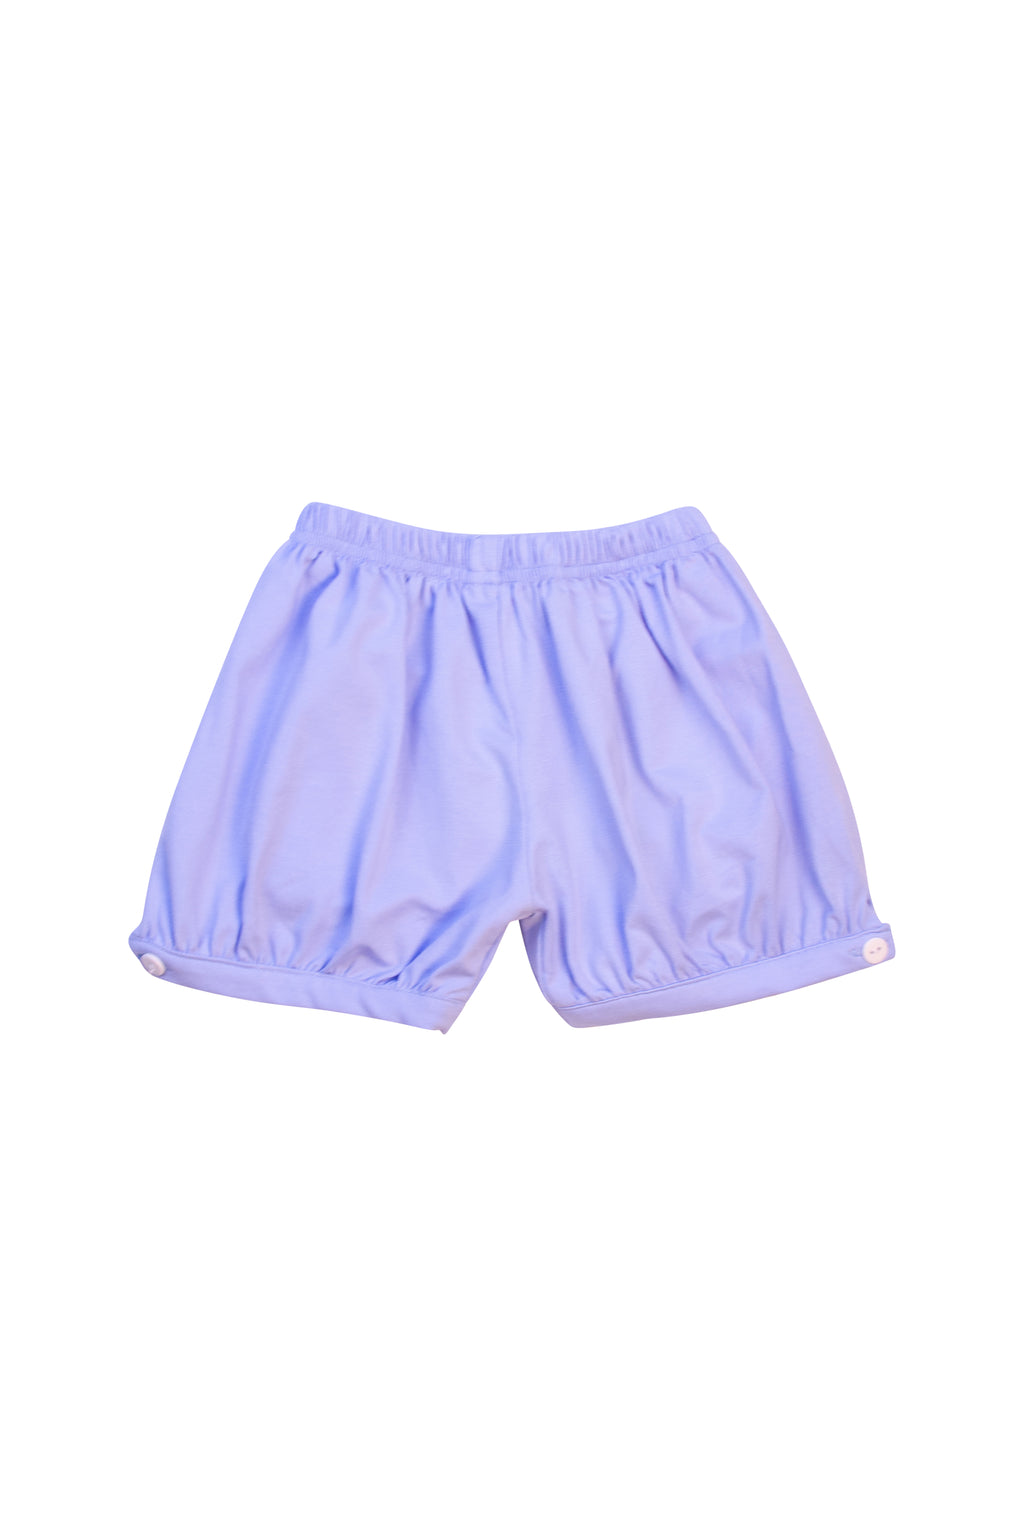 Boys Blue Knit Banded Shorts